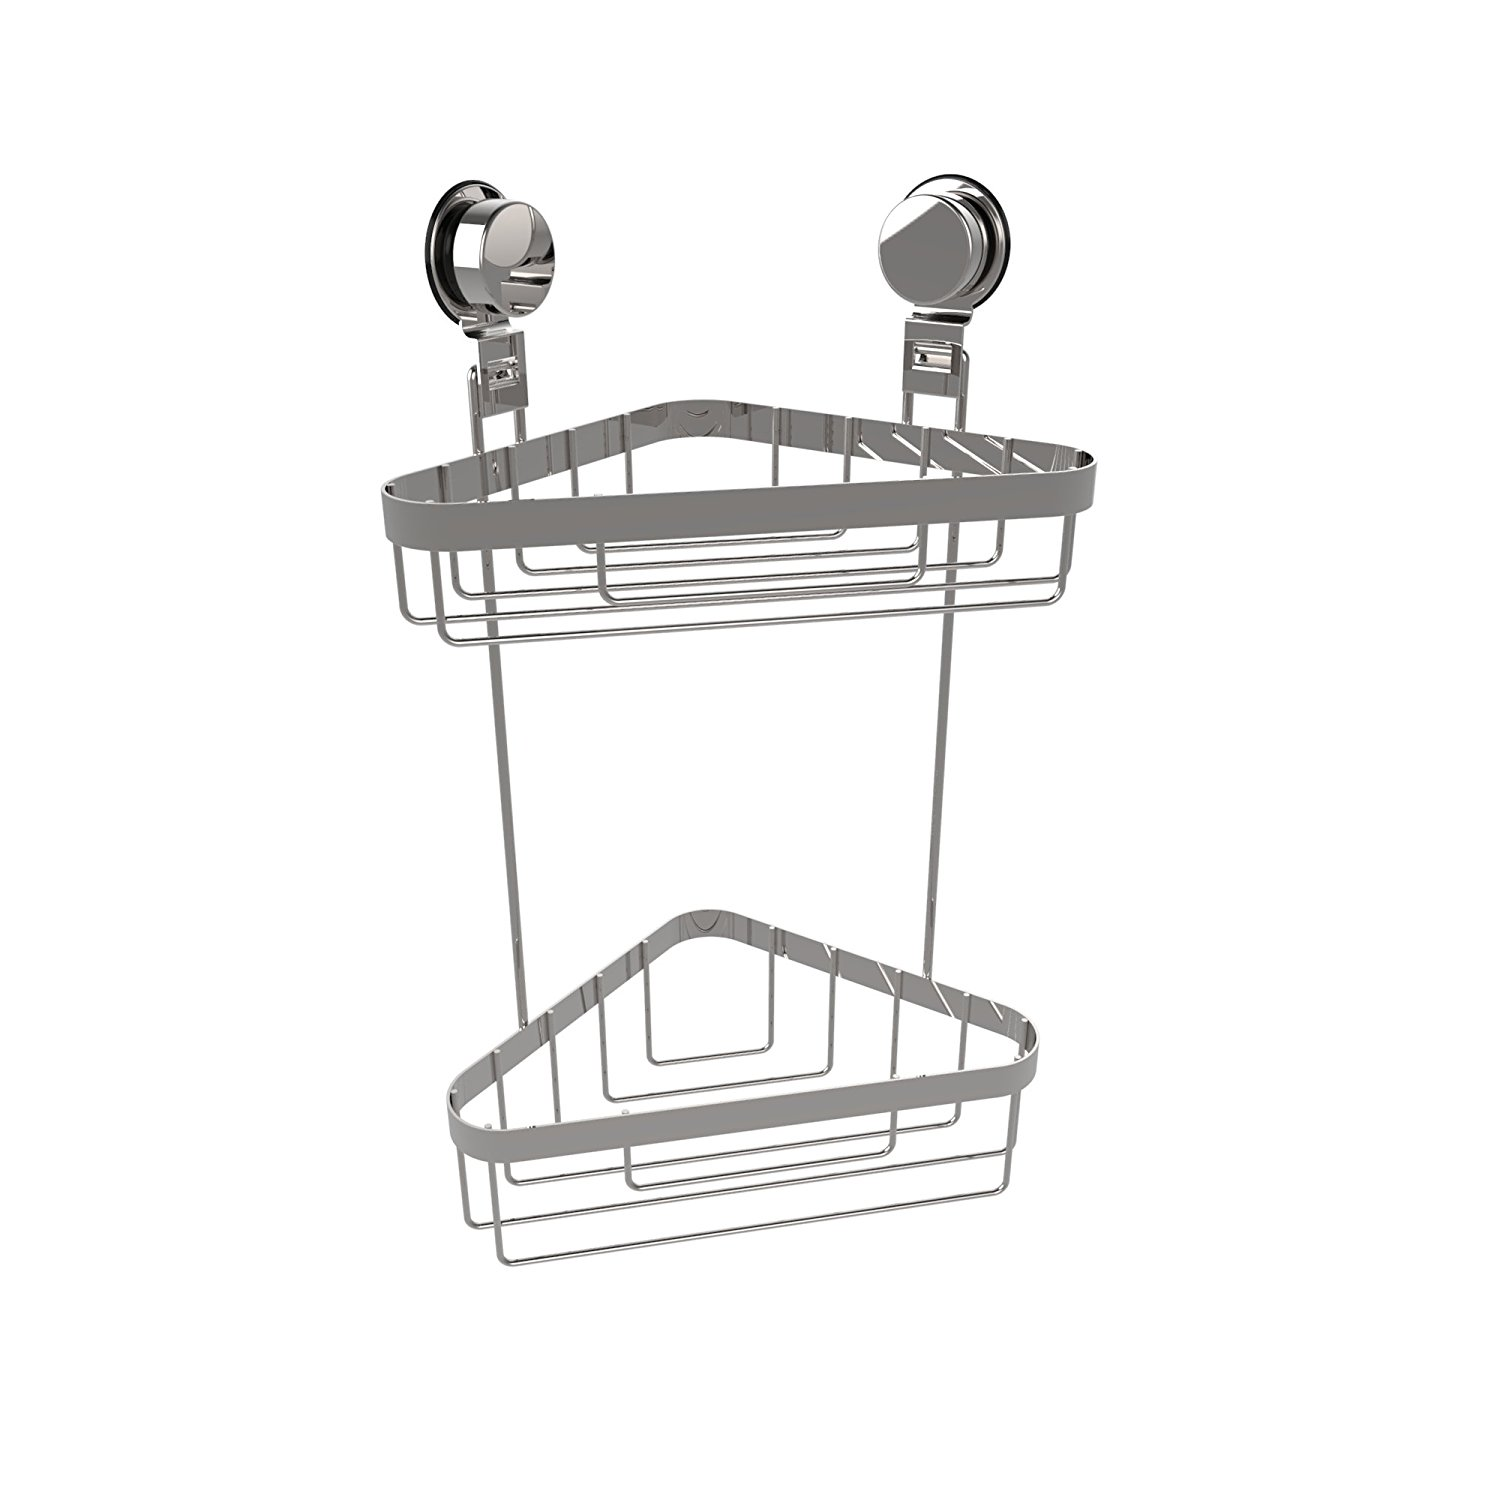 Wall Mounted Two Tier Corner Caddy-Shower Storage Rack fo...